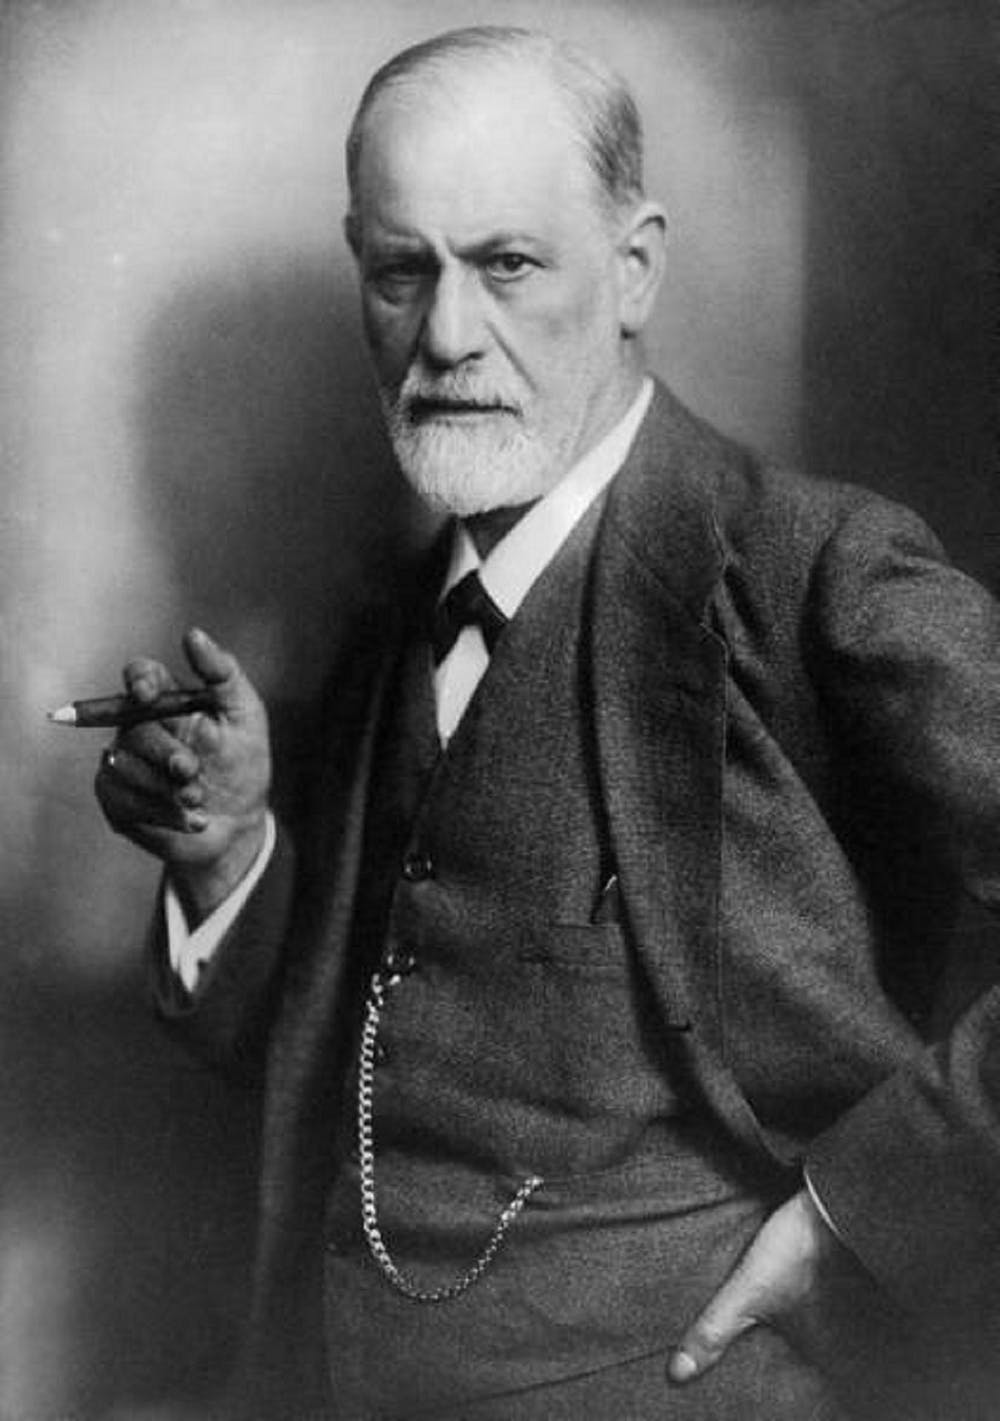 Sigmund Freud wrote of a universal death drive, which he dubbed 'Thanatos' | Image credit: Wikimedia Commons, CC BY-SA